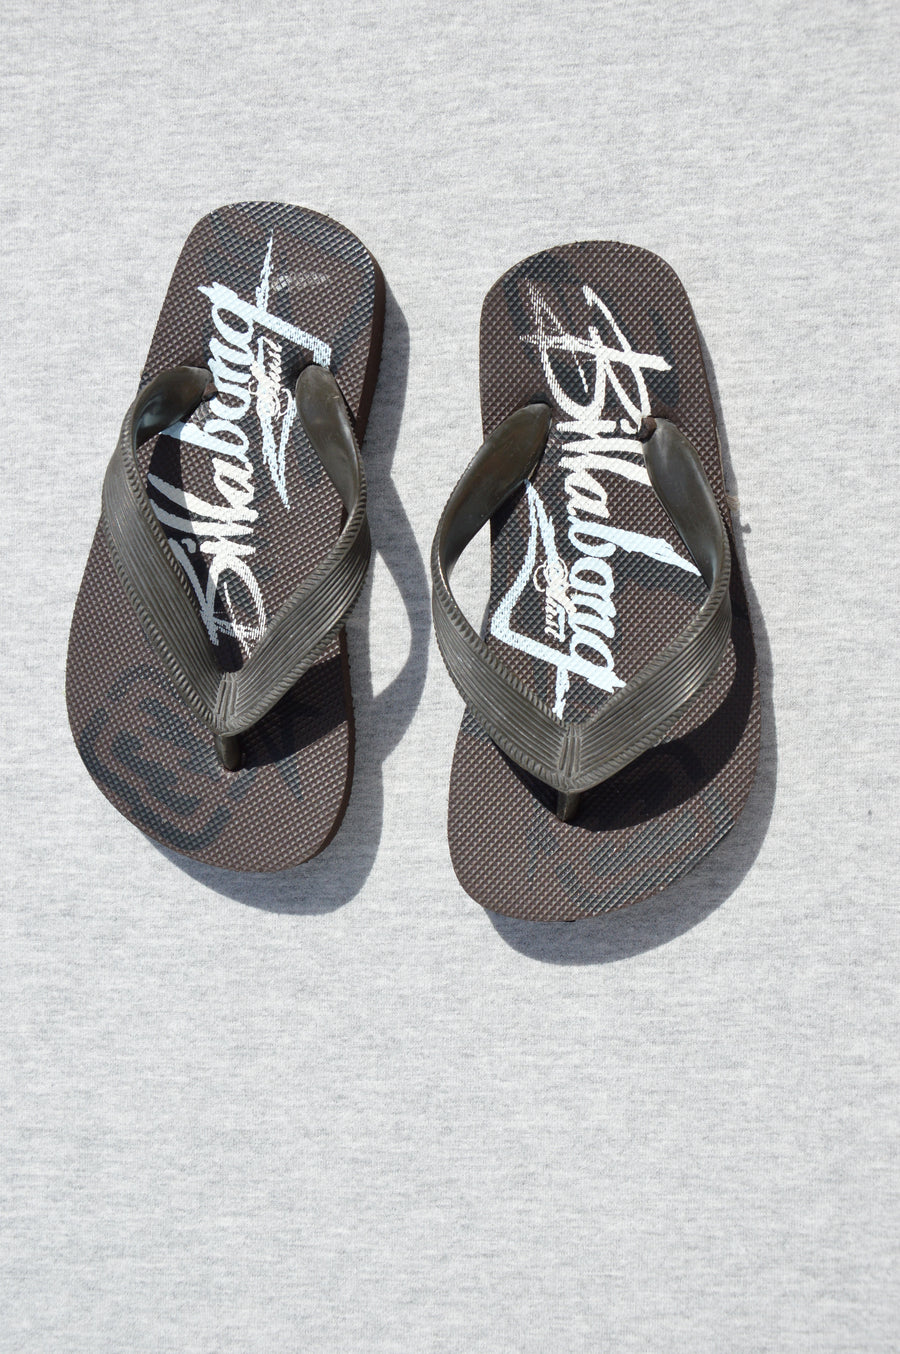 Billabong - brand new - brown & white jandals, size NZ 7